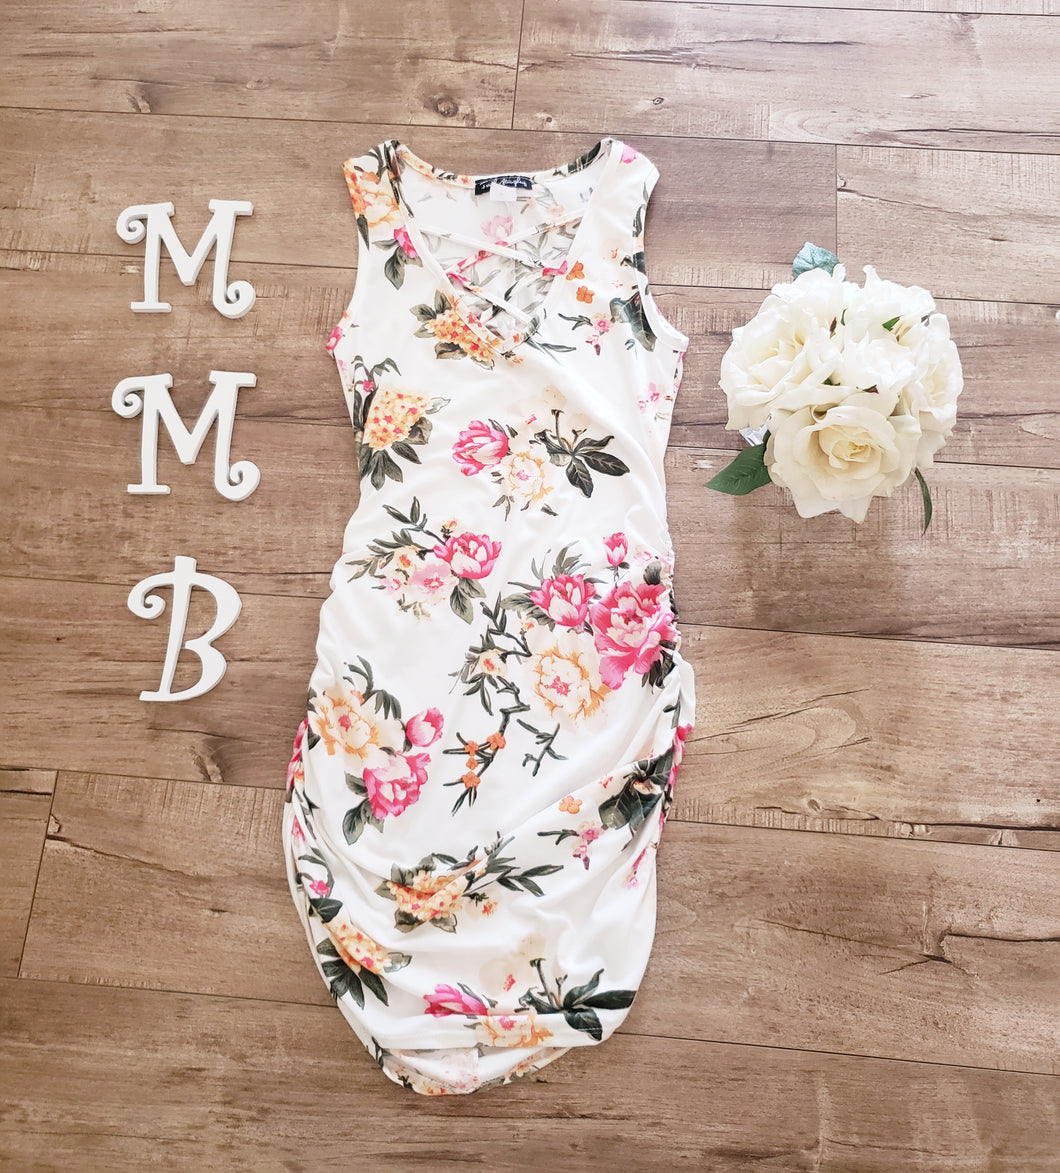 White floral crisscross front dress.